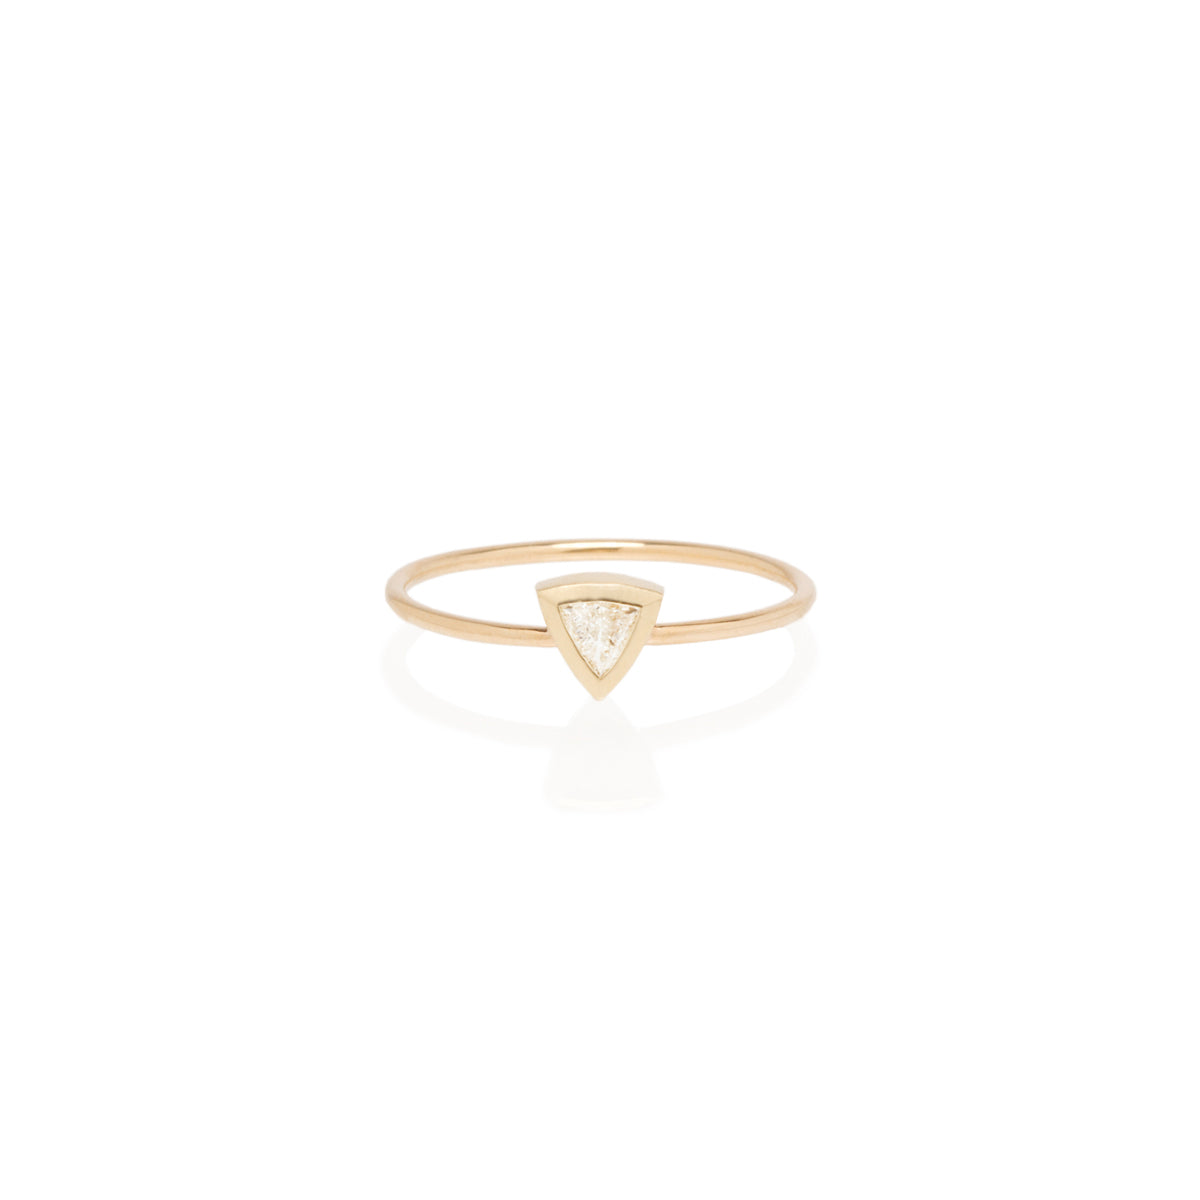 Zoë Chicco 14kt Yellow Gold Large Trillion Diamond Ring